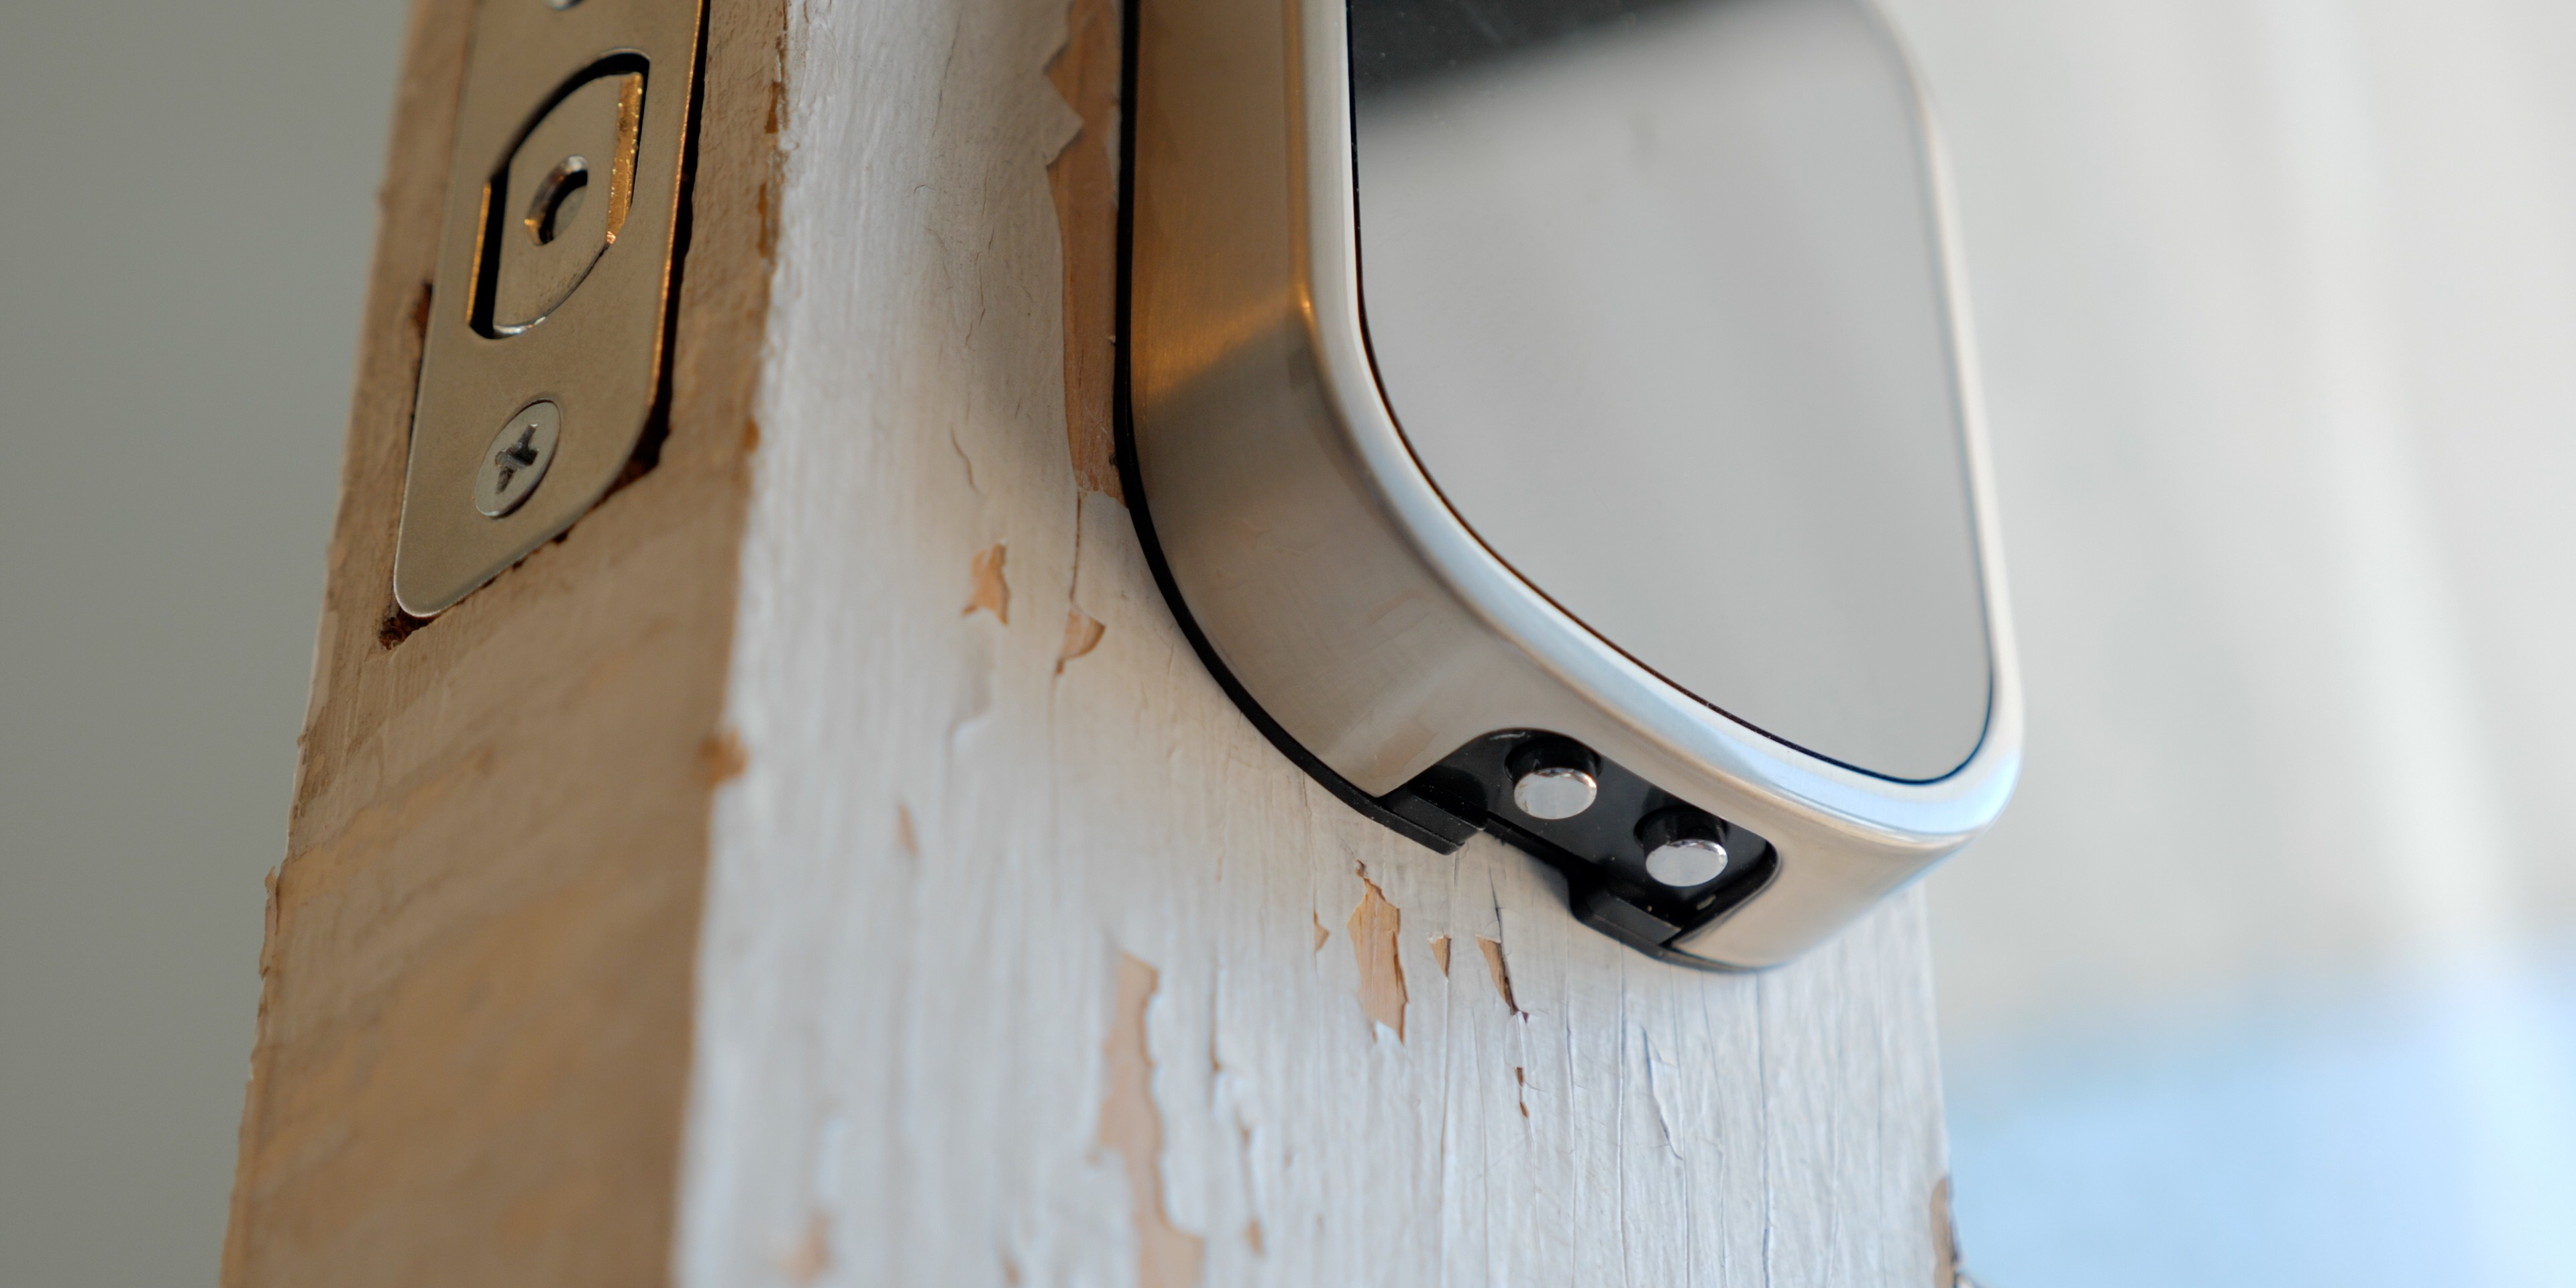 Review: Yale's Assure Lock SL is an awesome HomeKit-enabled